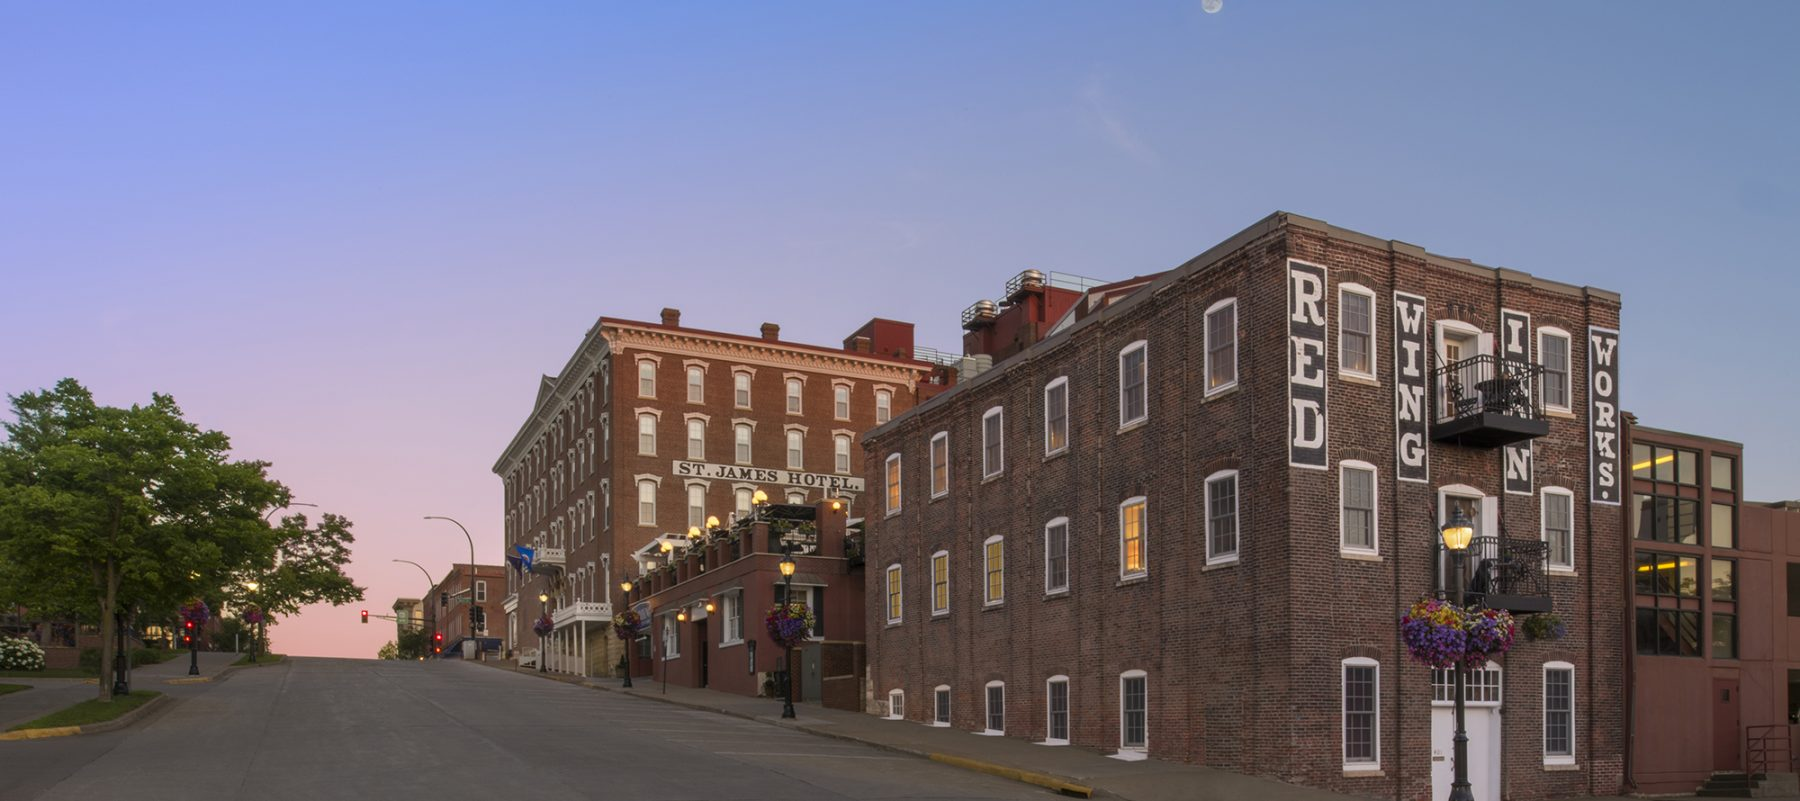 St  James Hotel in Red Wing Minnesota | Place to Stay in Red